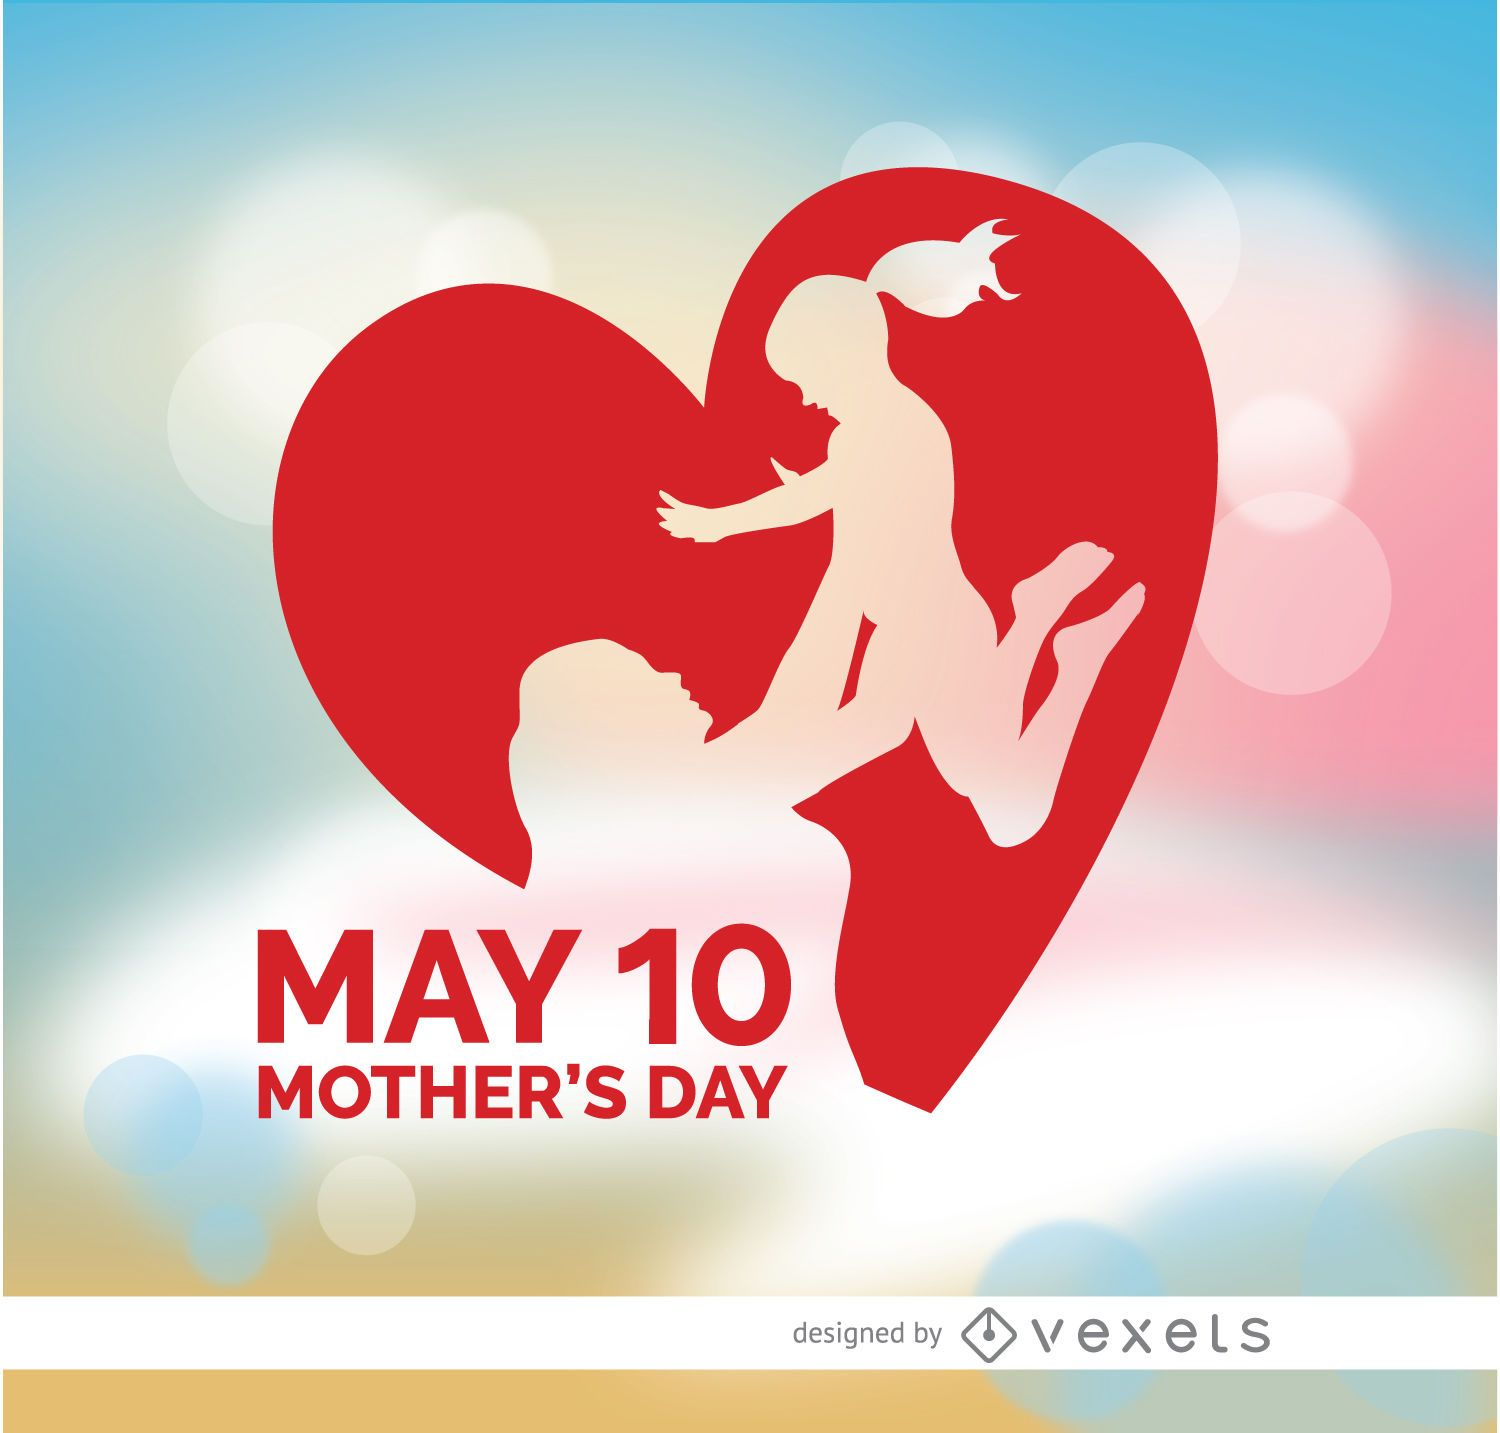 Mother?s Day raising daughter heart